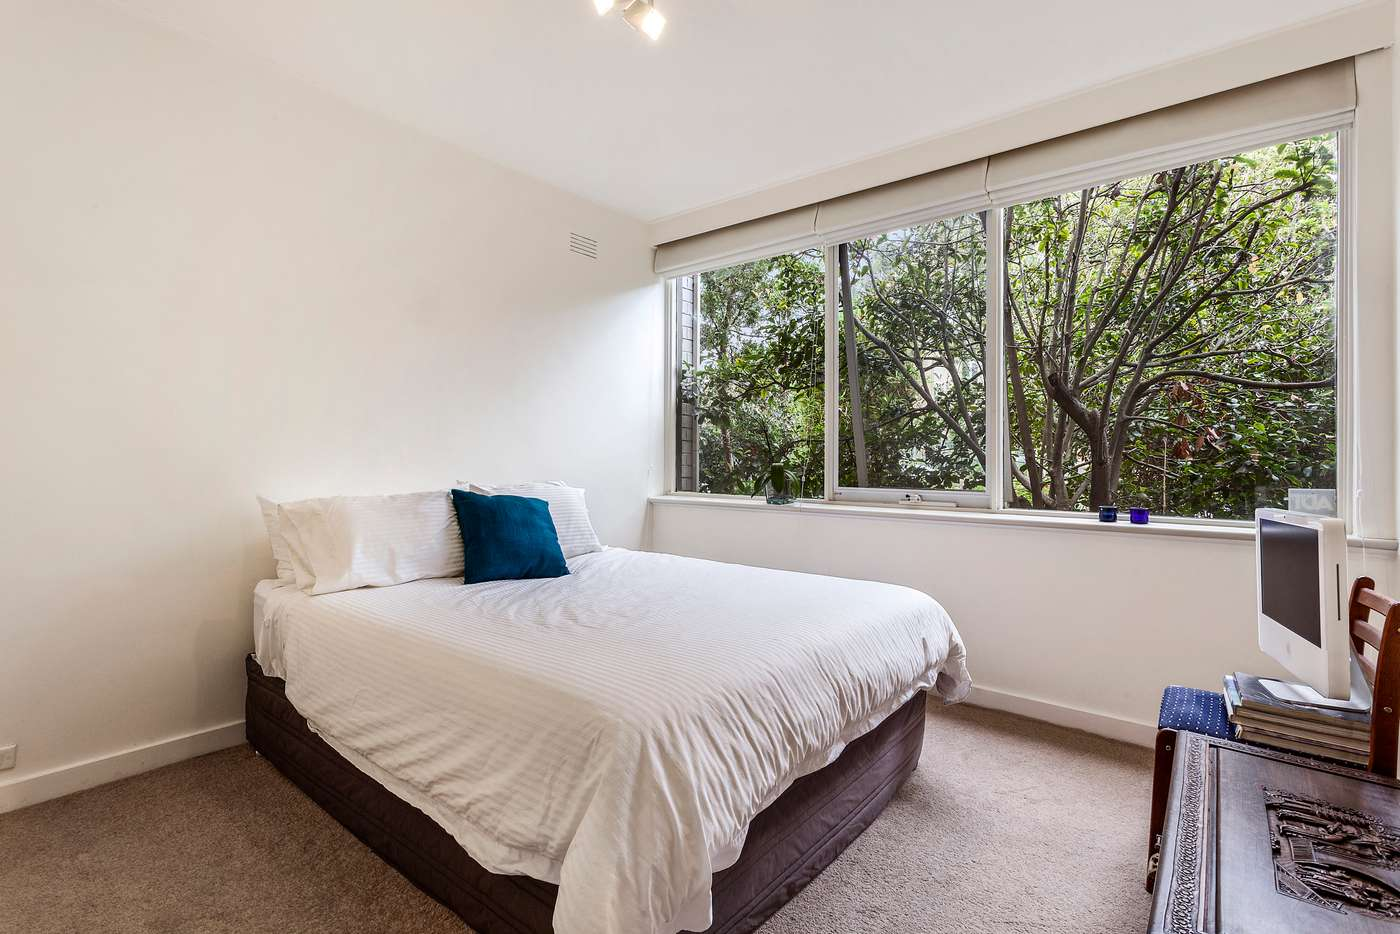 Sixth view of Homely apartment listing, 7/1425 High Street, Glen Iris VIC 3146